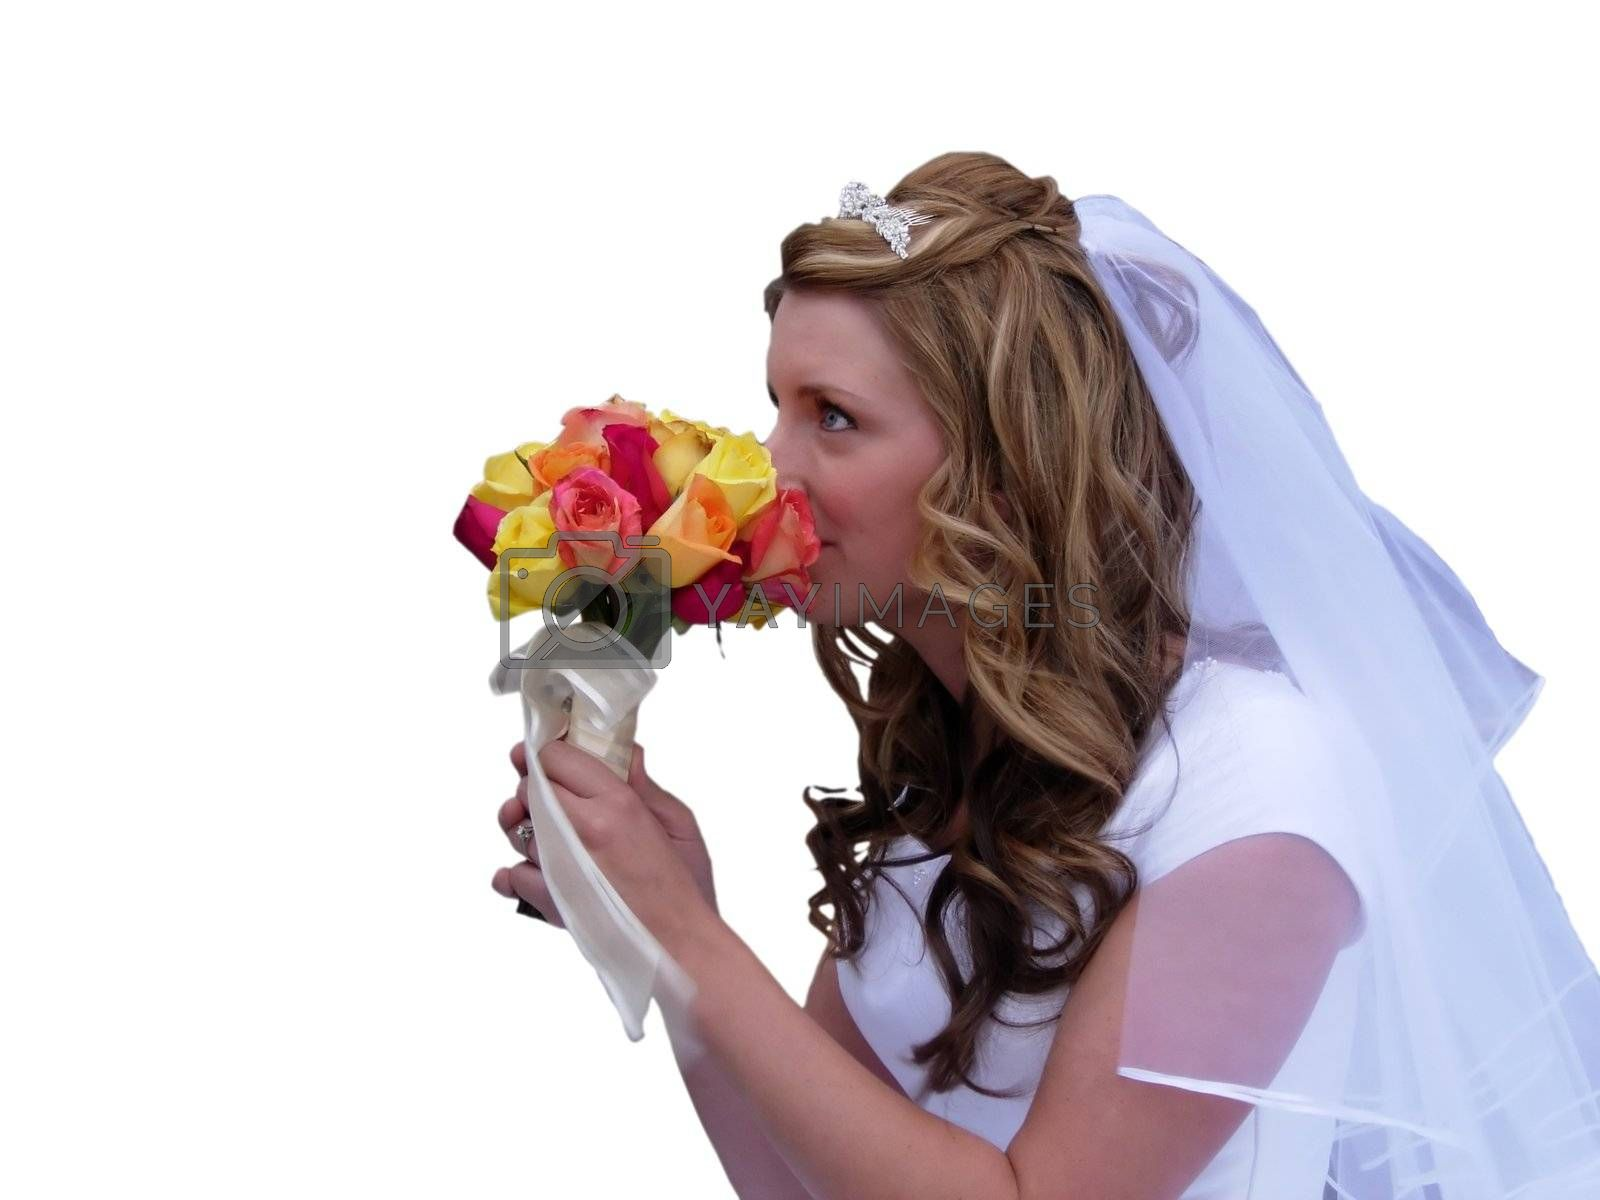 A young bride smelling her bouquet on a white background